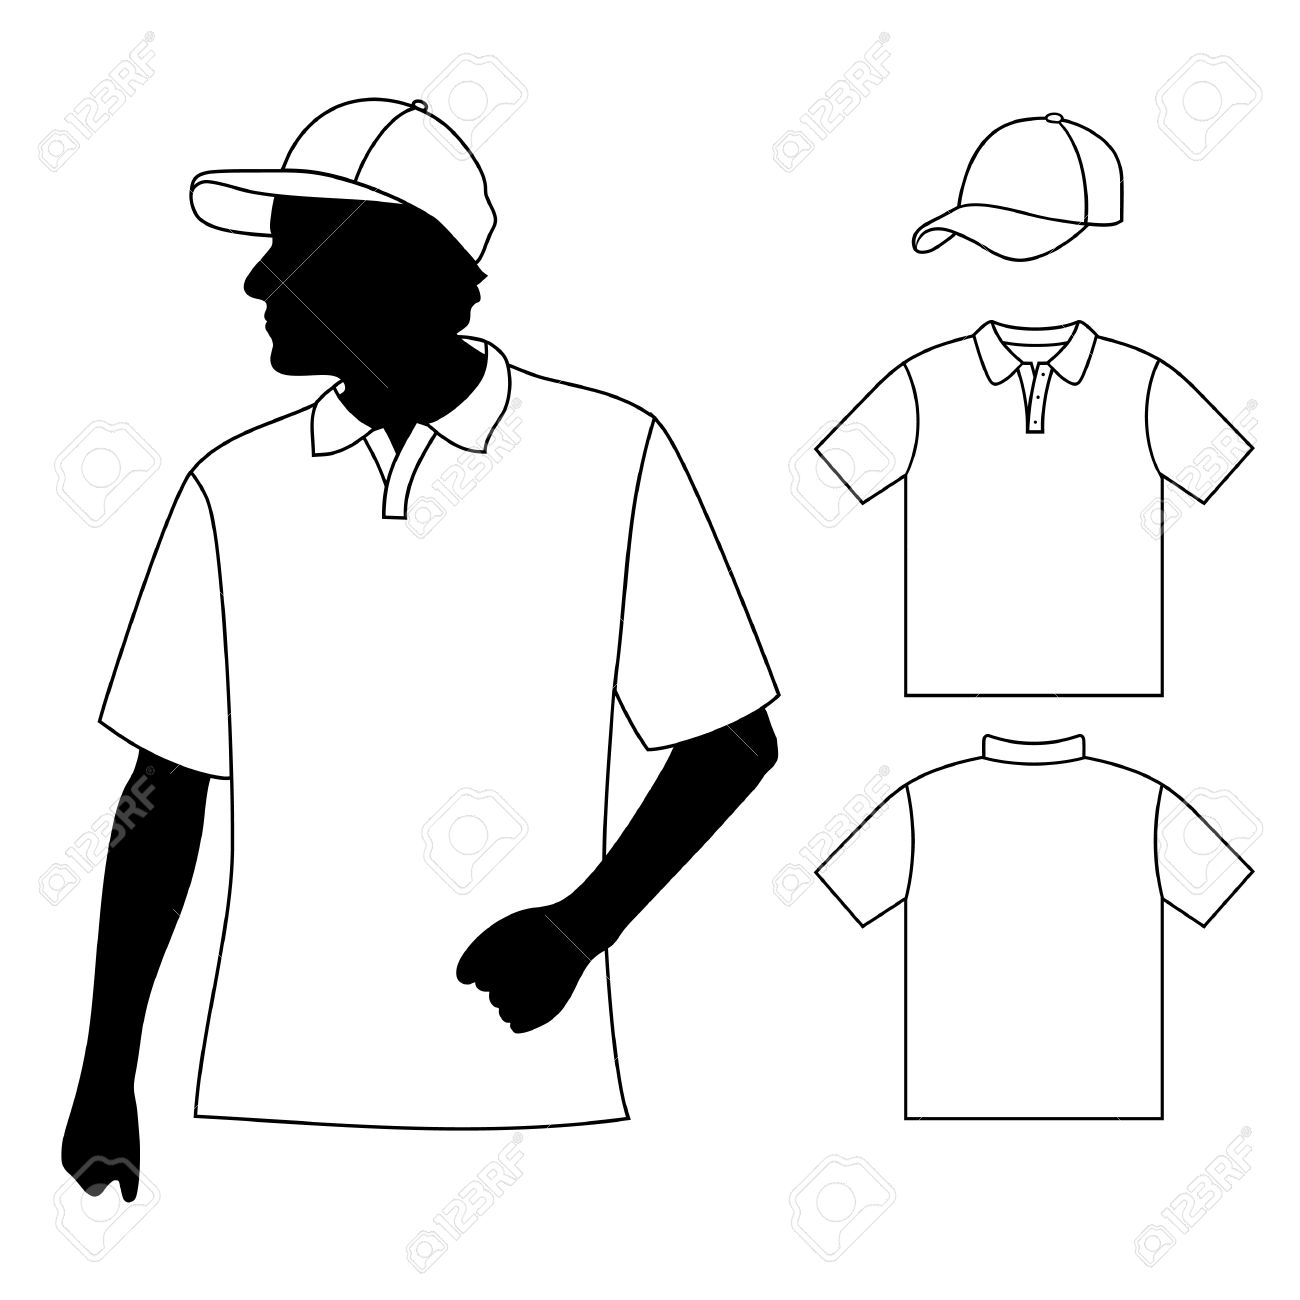 1300x1300 T Shirt Men S Polo Shirt Template With Human Body Silhouette